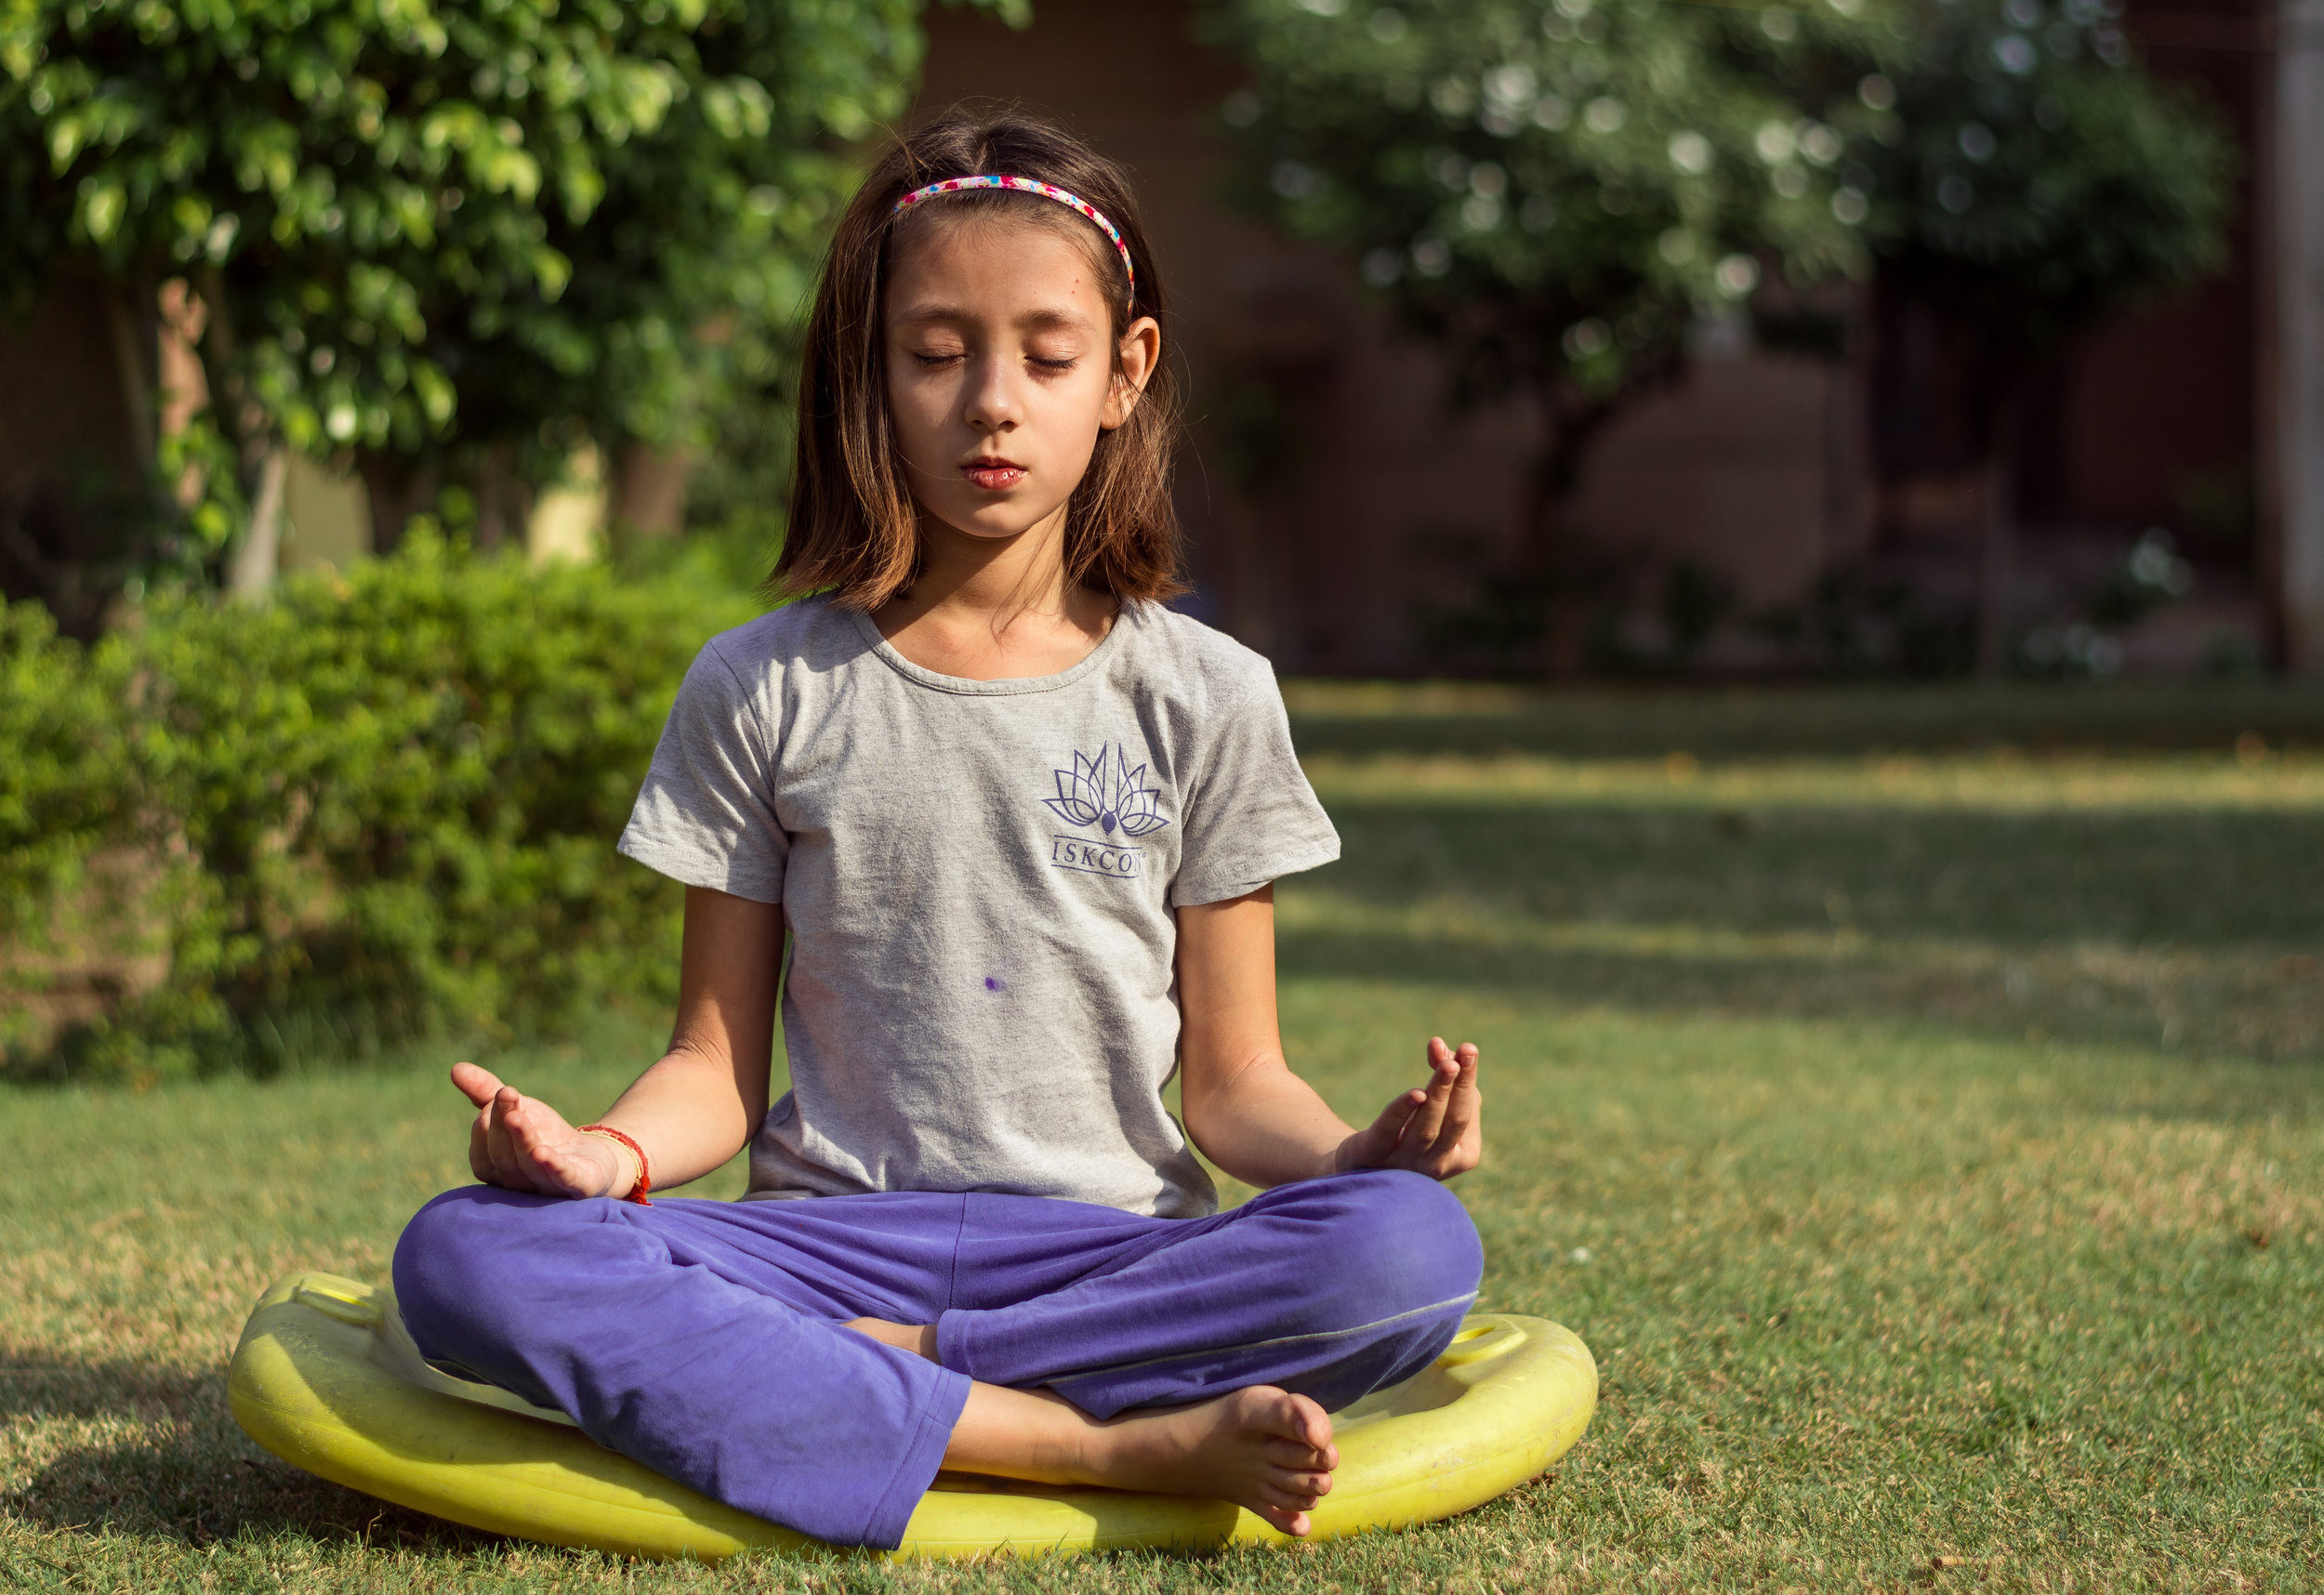 """Self Awareness For Children & Teens  - """"The true key to happiness and well-being isn't wealth or fame – it lies within us. Like all other genuine spiritual paths, Buddhism teaches that the more you give to others, the more you gain. It also encourages awareness of interconnectedness and appreciation of all the little gifts that life offers us, all contained within this present moment. As our concern and compassion for others expands, our personal fulfillment gradually increases in sync. As a Zen master might say, if you seek inner peace you won't be able to find it, but the act of giving up the idea of such a reward in itself – and focusing instead on others' happiness – creates the possibility for lasting peace. This is truly the spiritual dimension of Zen."""" - Mindworks.The goal is to help to teach children and teenagers develop self-awareness, kindness, and a sense of interconnectedness with beings and our environment. I do this through the practice of zen meditation and age-appropriate art, music, games, and outdoor activities. Sessions are 60 min."""